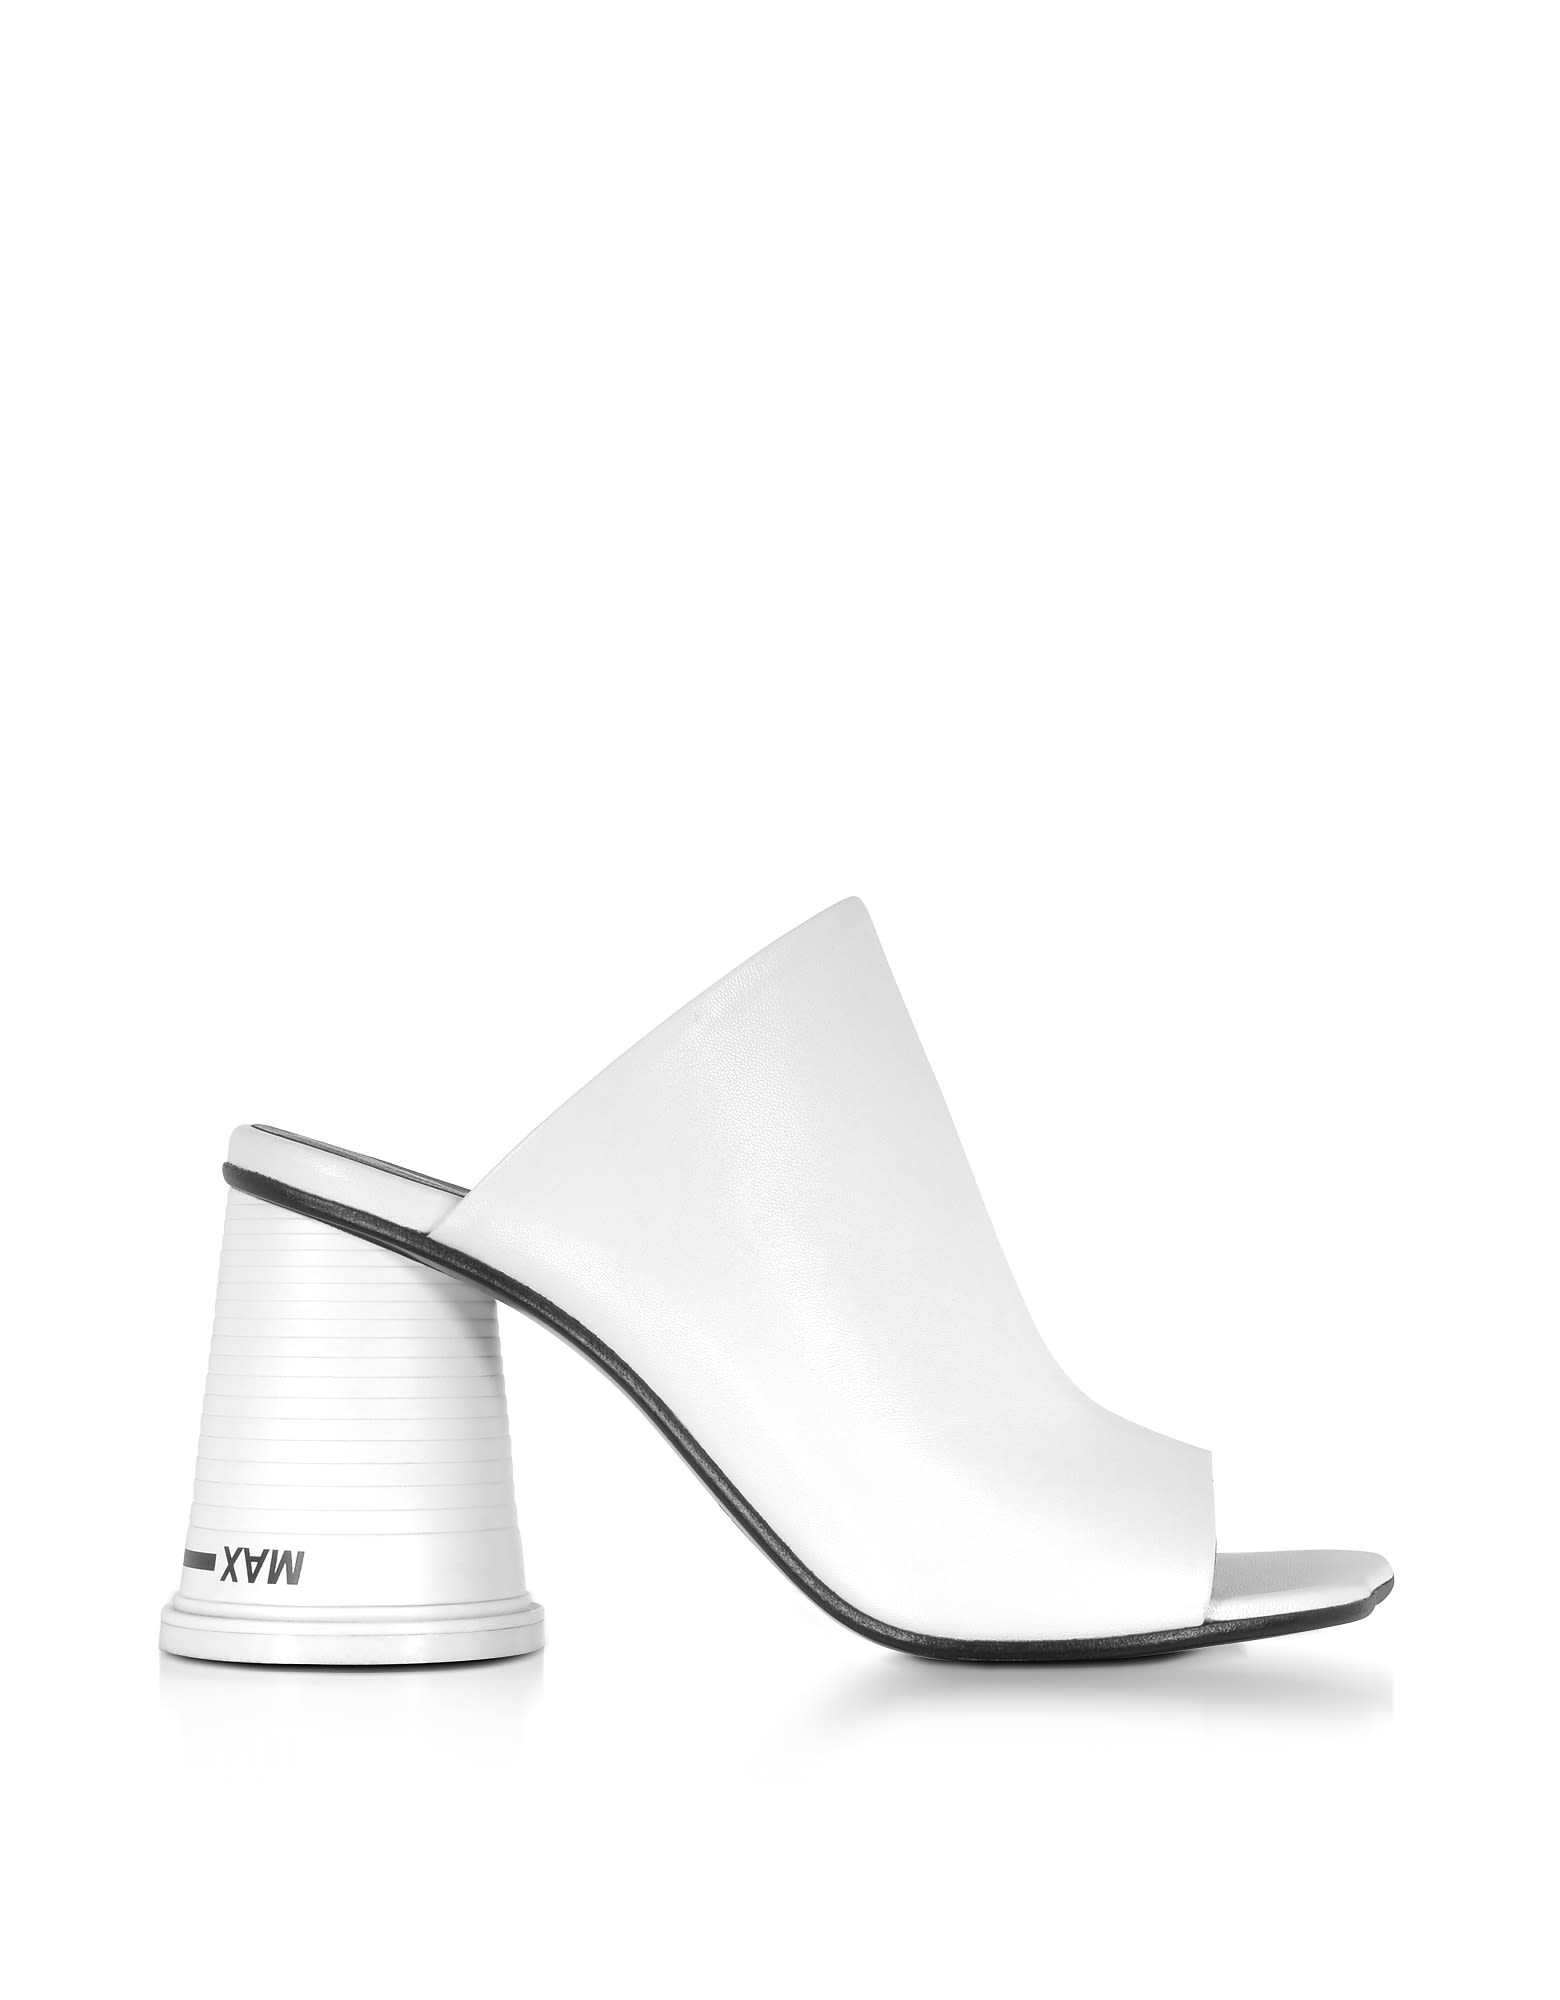 Maison Martin Margiela Designer Shoes, Leather High Heel Slide Sandals